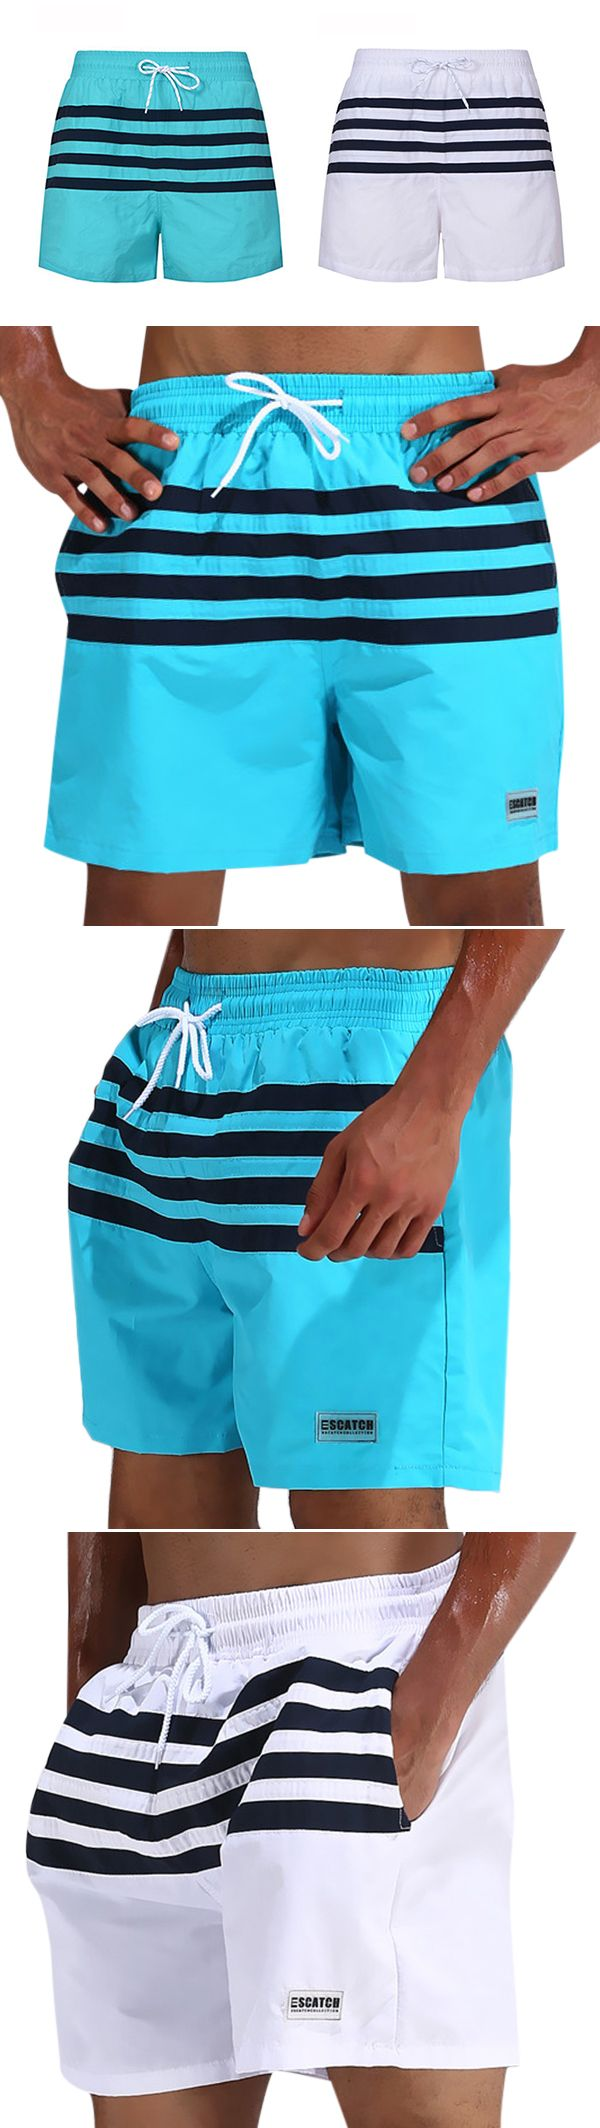 US$16.38  (45%OFF) Loose Sports Stitching Stripes Breathable Board Shorts Swimwear for Men